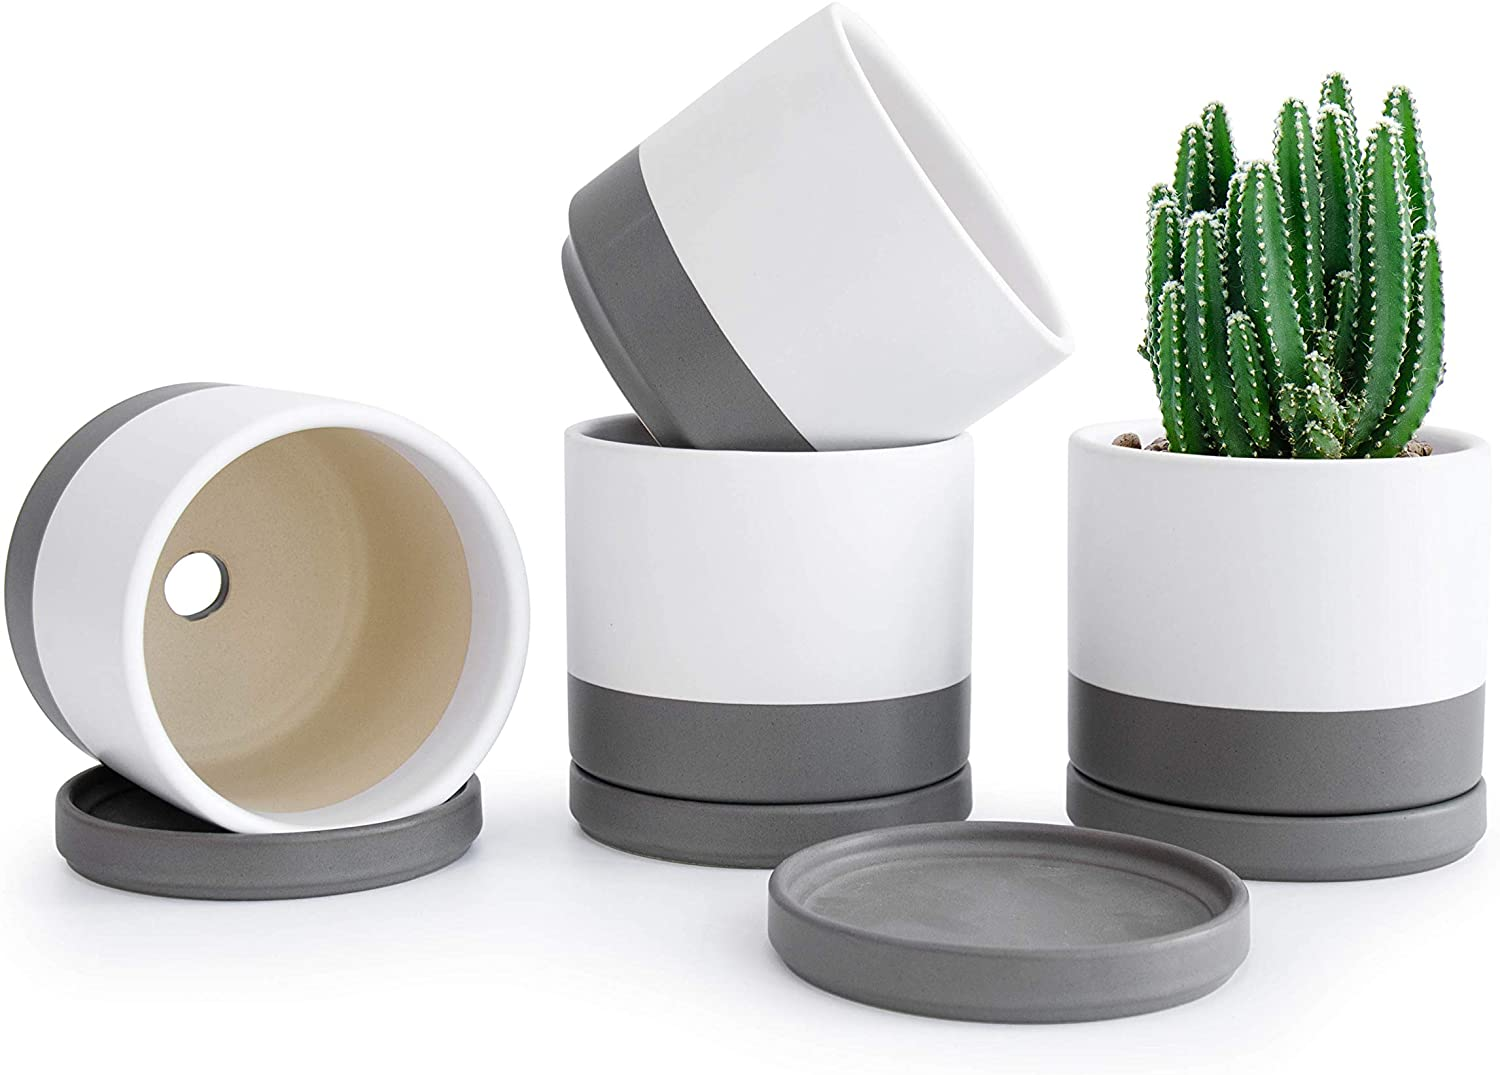 Set of 4 Choice Small Succulent Plant Planter Ceramic Bombing free shipping 4.3 Inch Po Pots